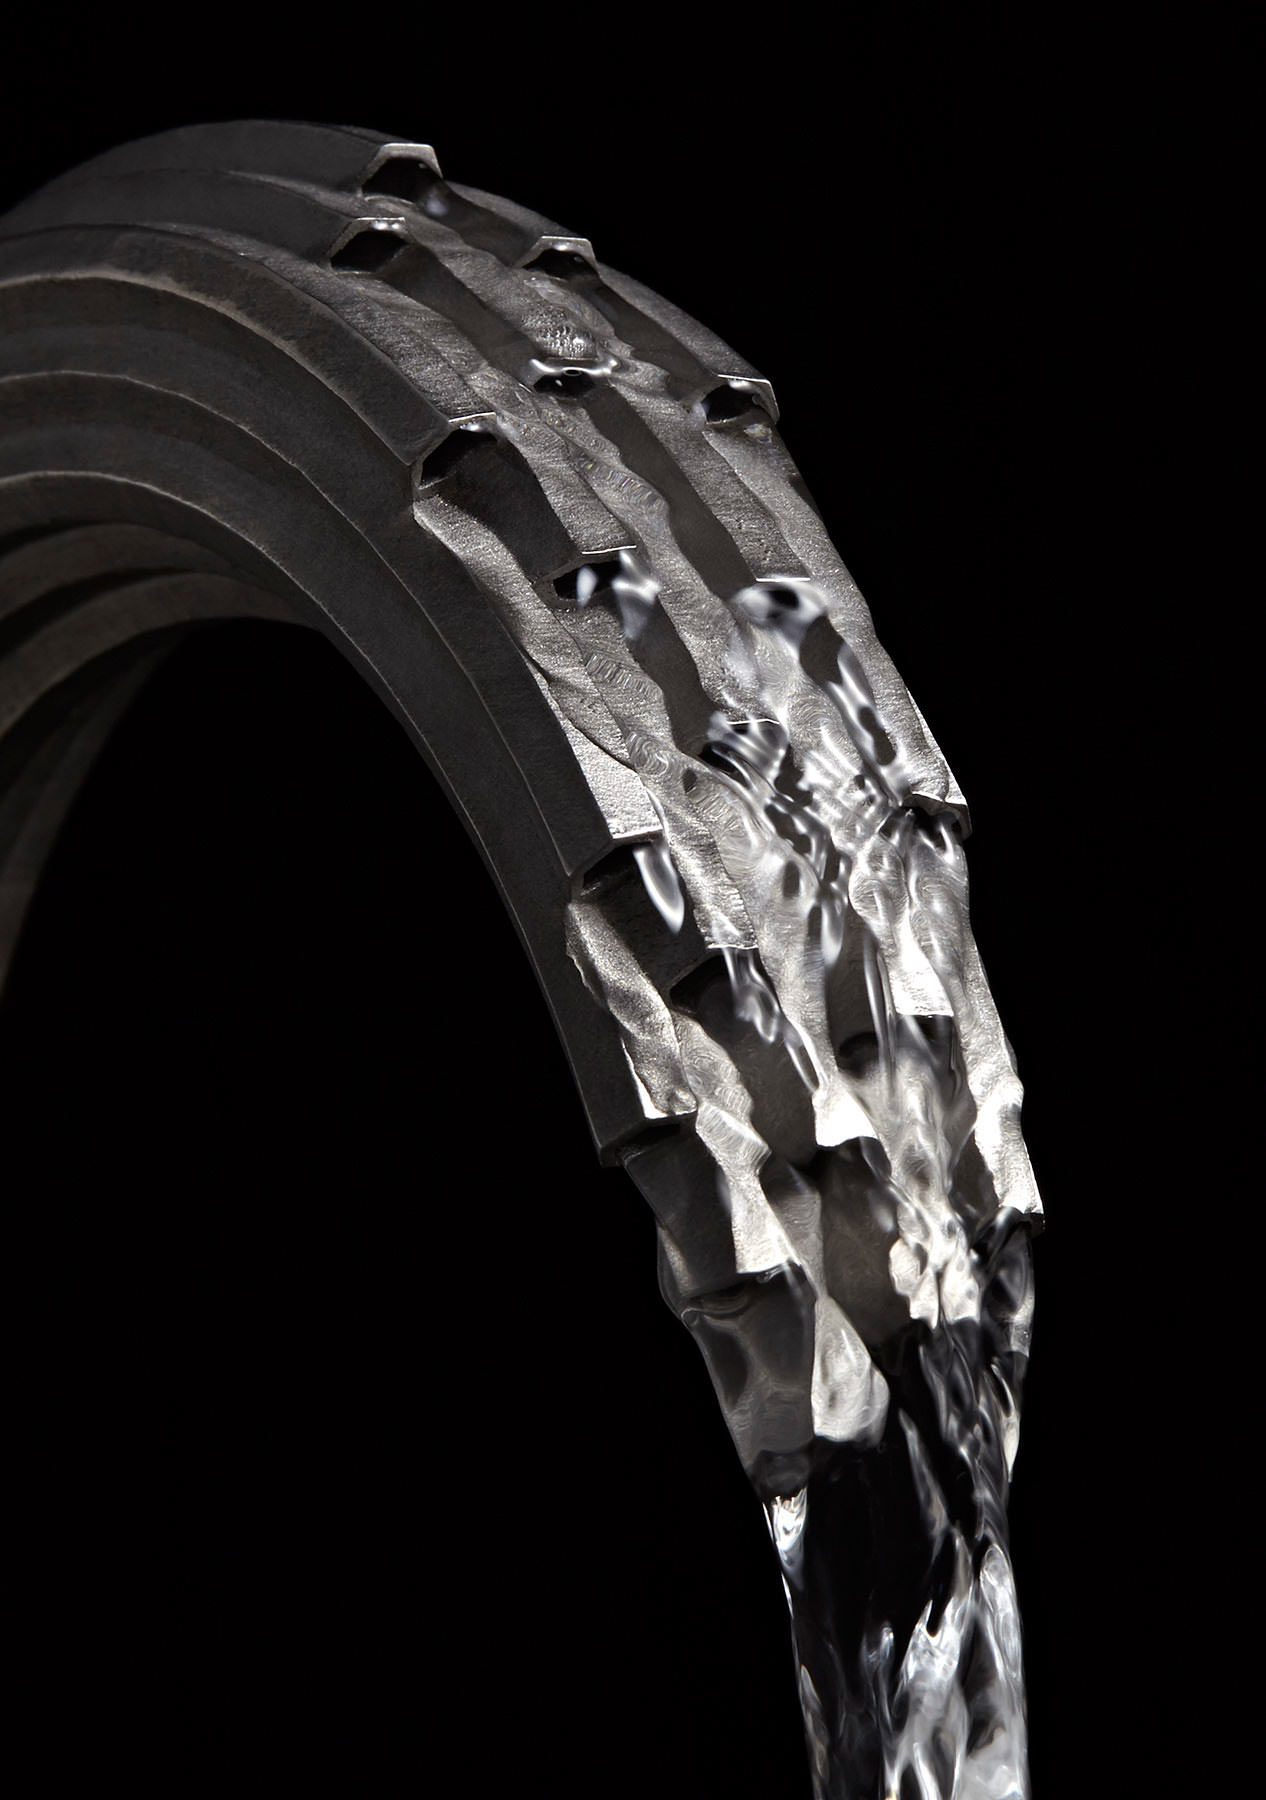 Ams_DXV_3D_faucet_one_water-4